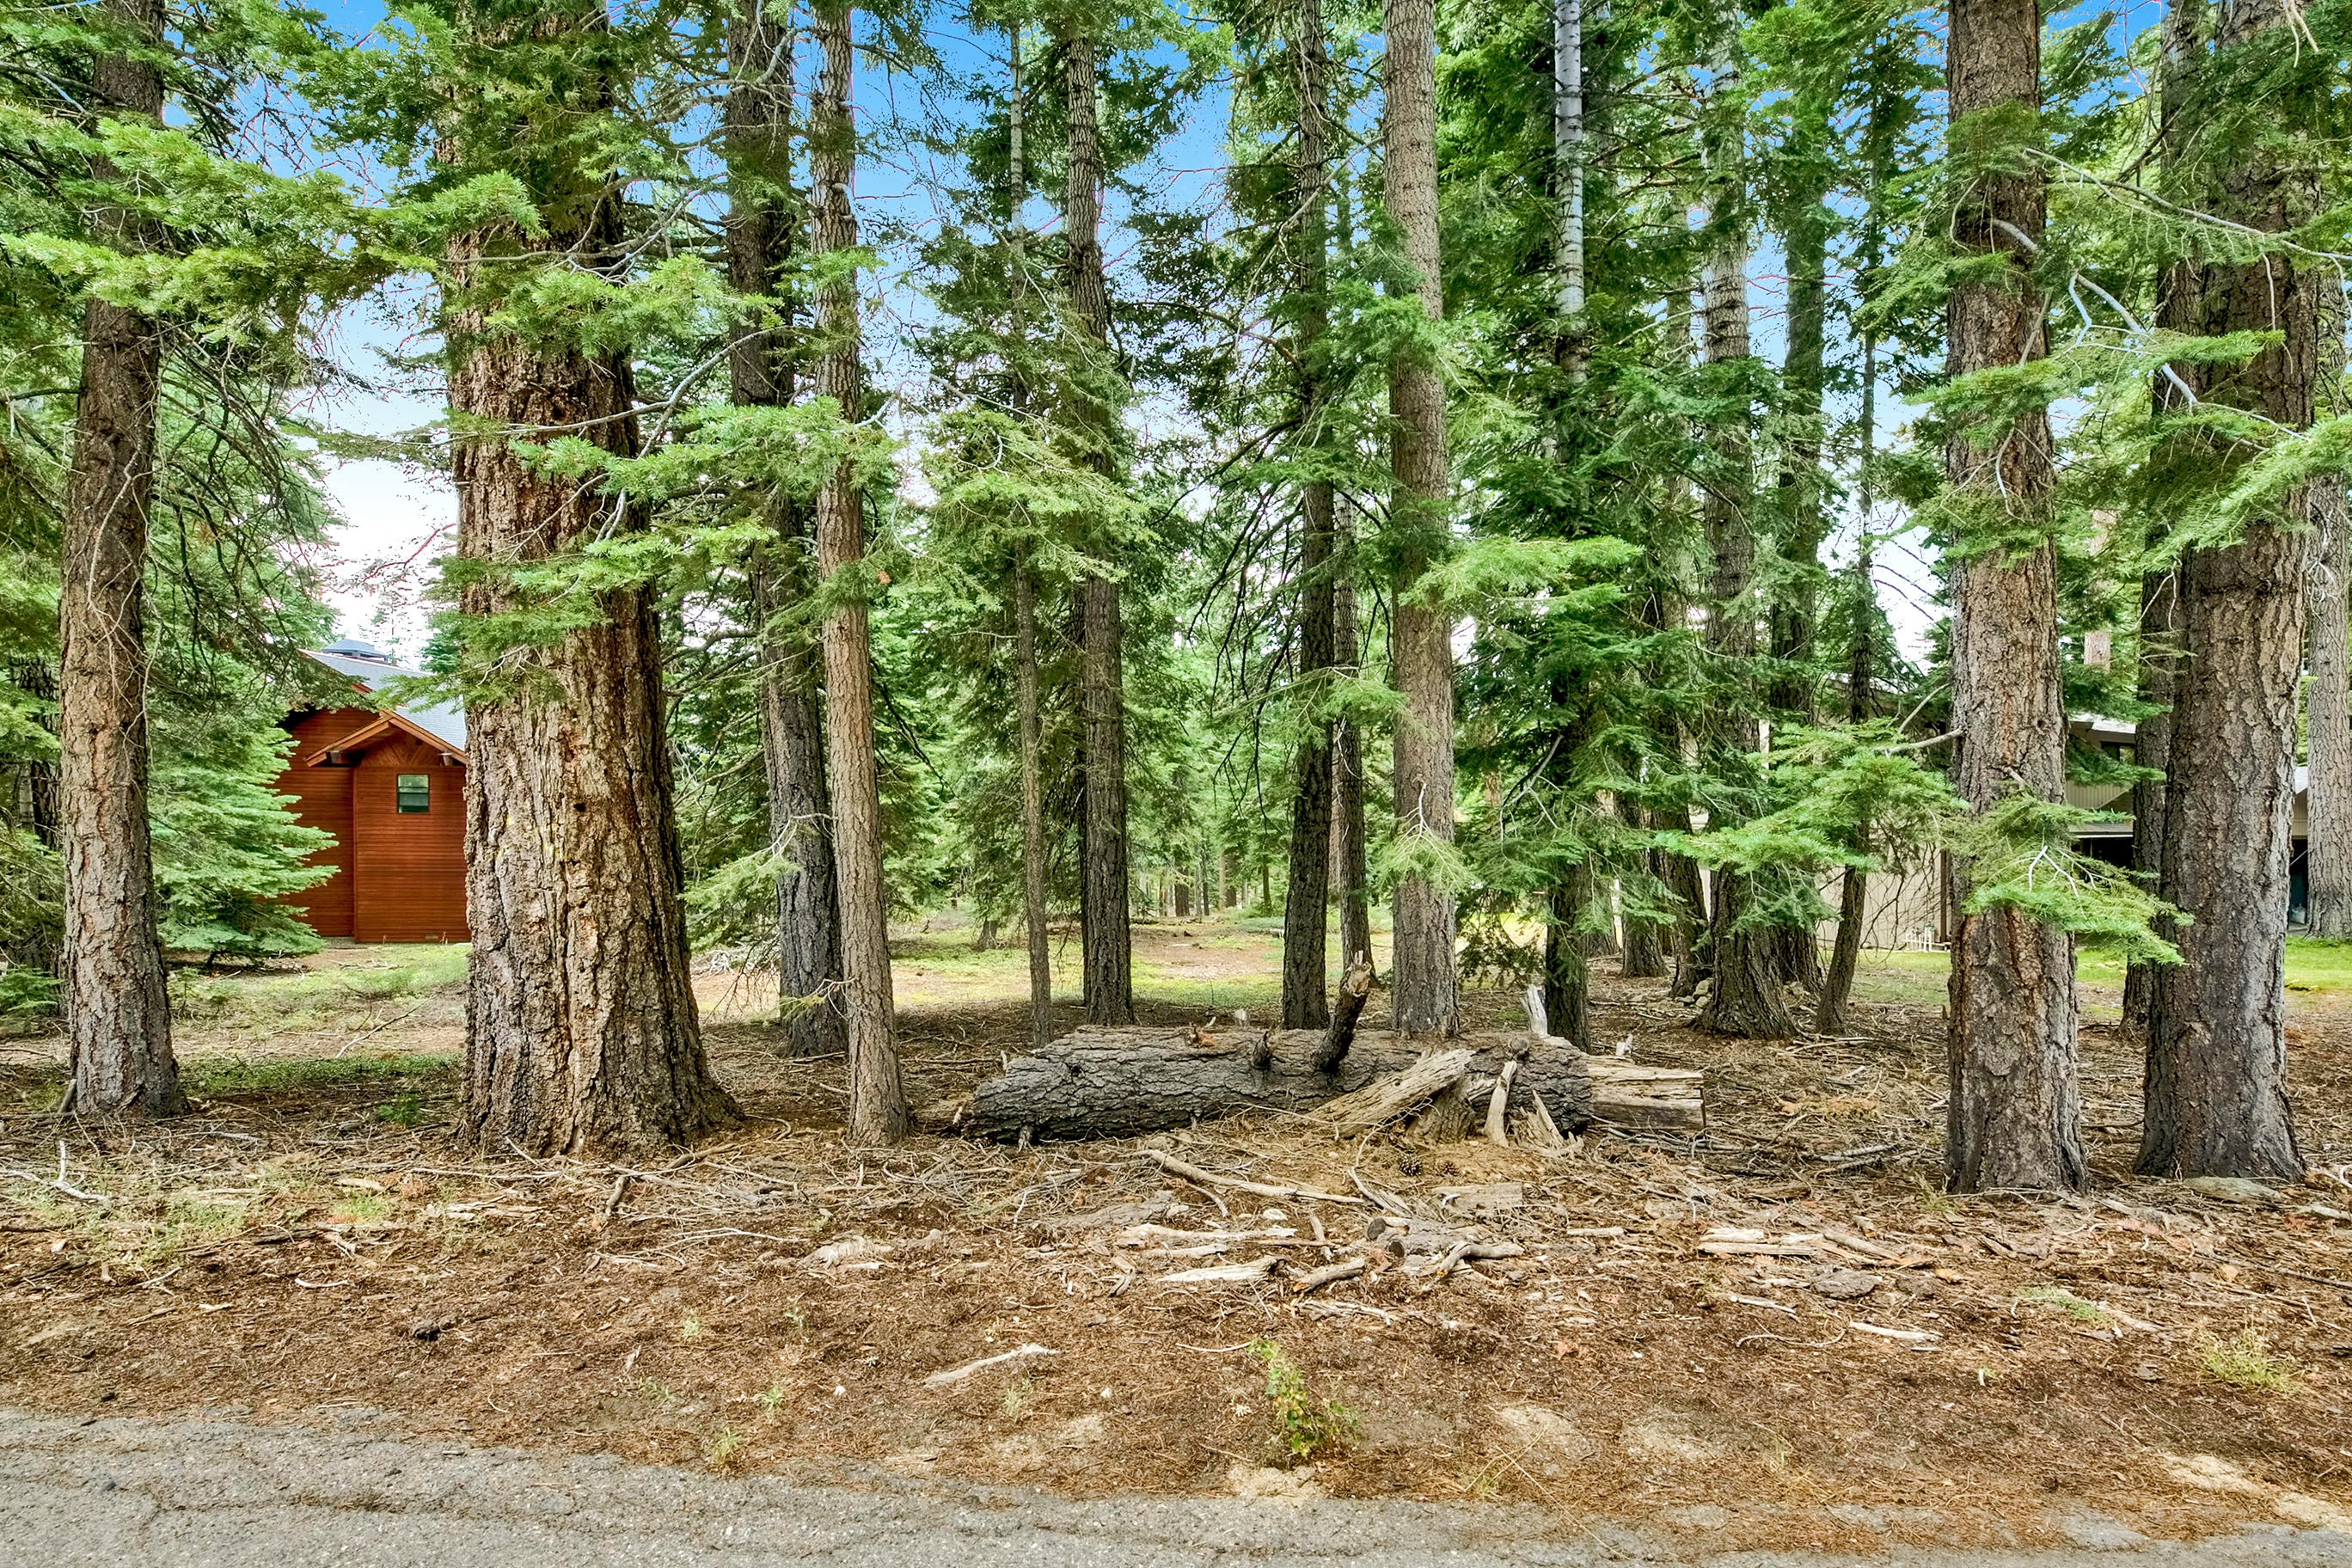 Compra di terreno in 2320 Dundee Cir, South Lake Tahoe, California ,96150